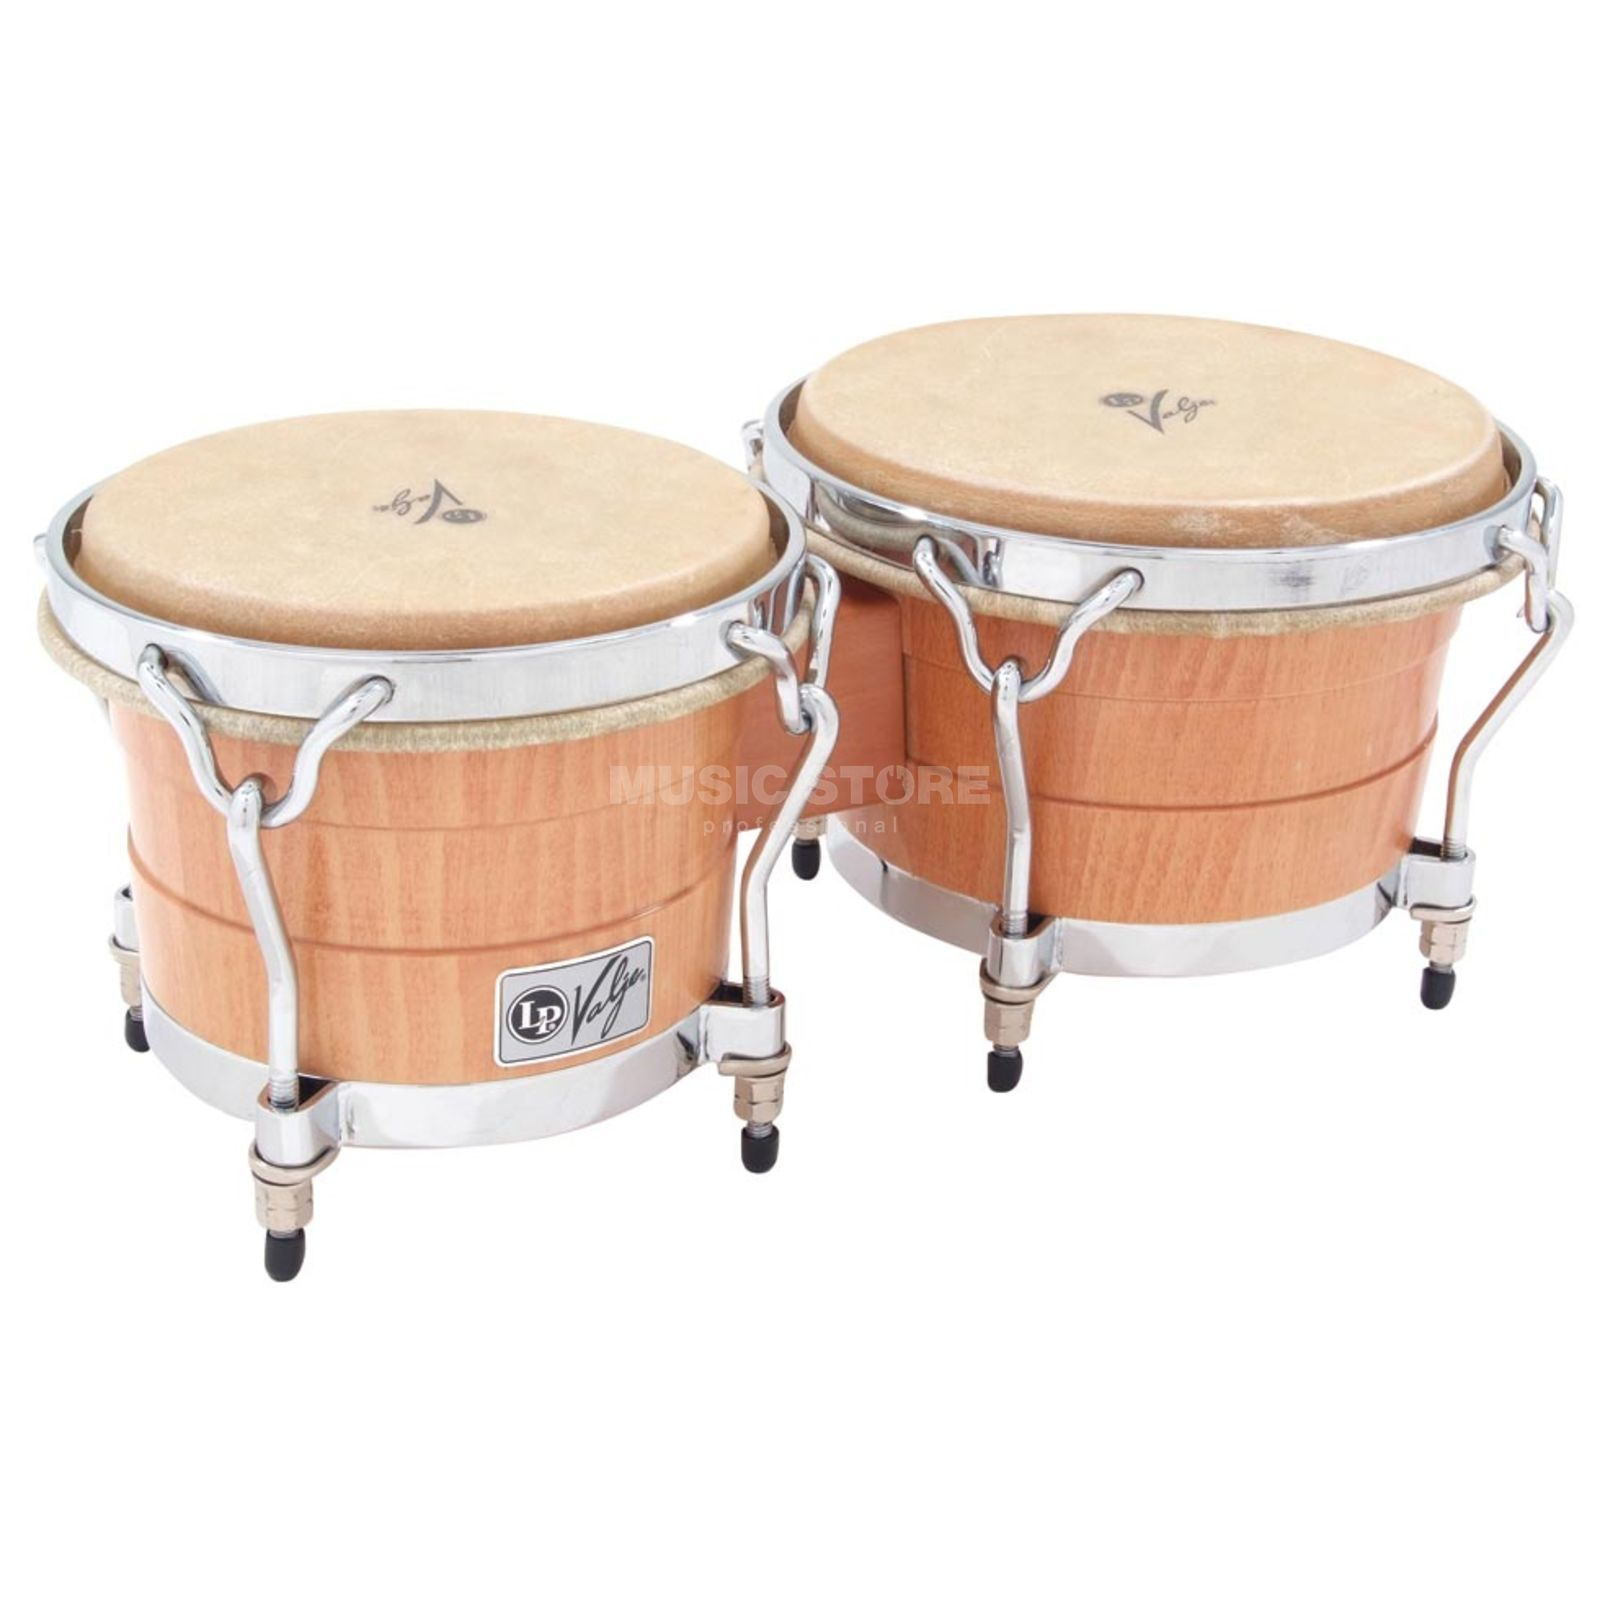 Latin Percussion Valje Bongos LP1400-BW, Beech Wood Produktbild